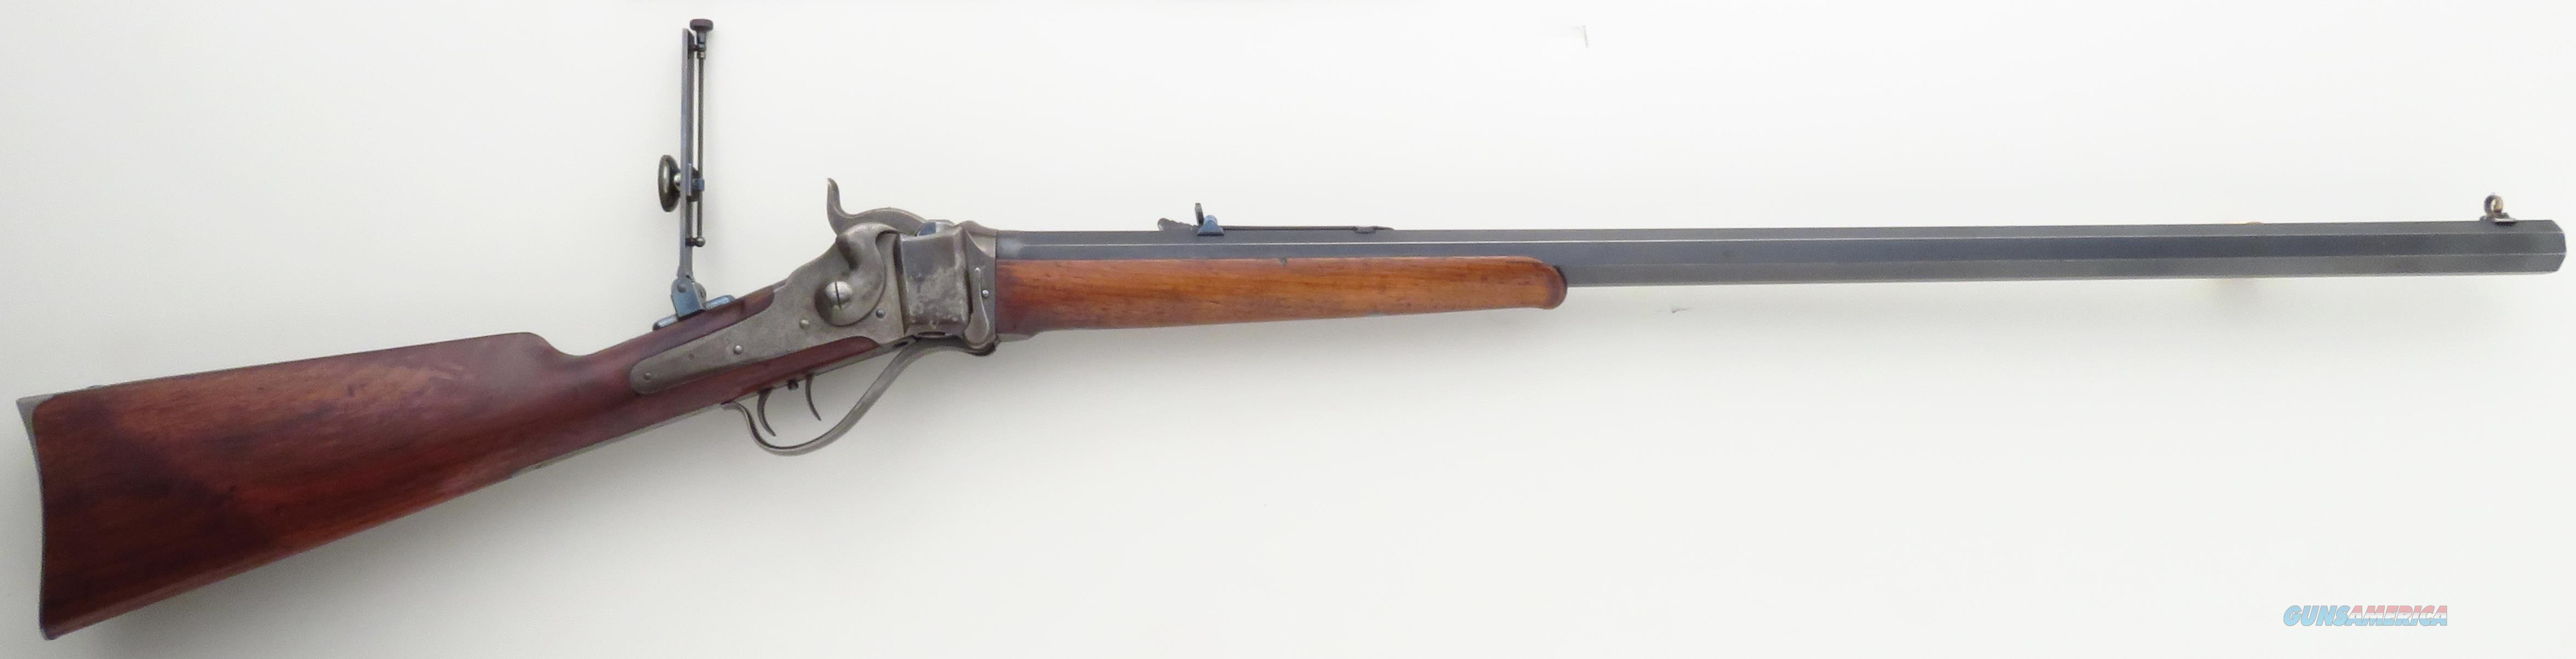 Sharps 1874 .45-110, 156222, tang sight, 1876, DST, 30-inch octagon with bright bore  Guns > Rifles > Sharps Rifles - Pre-1899